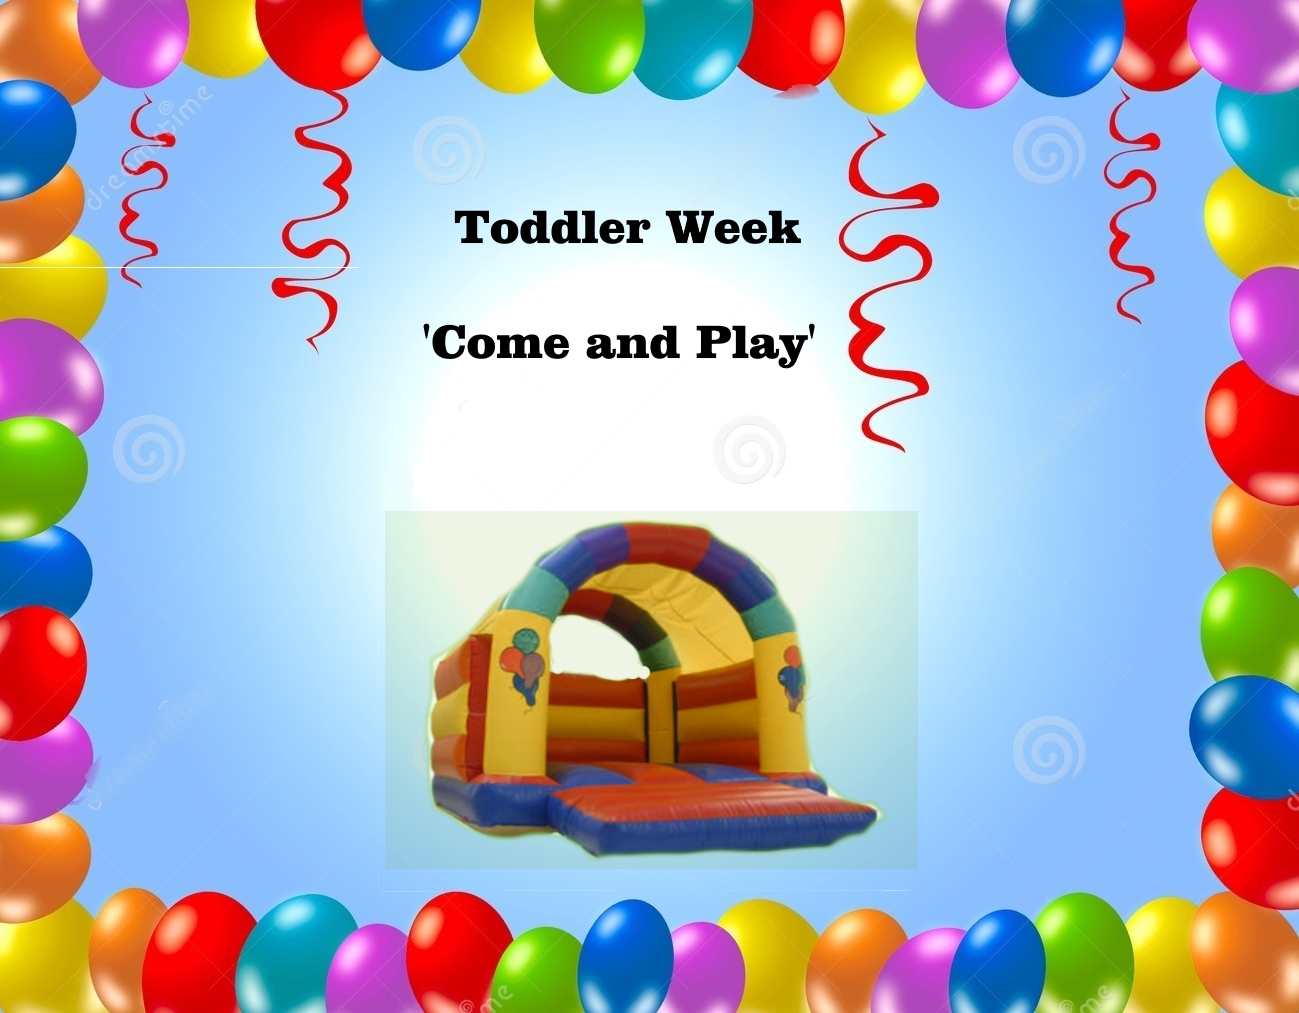 Toddler week come and play